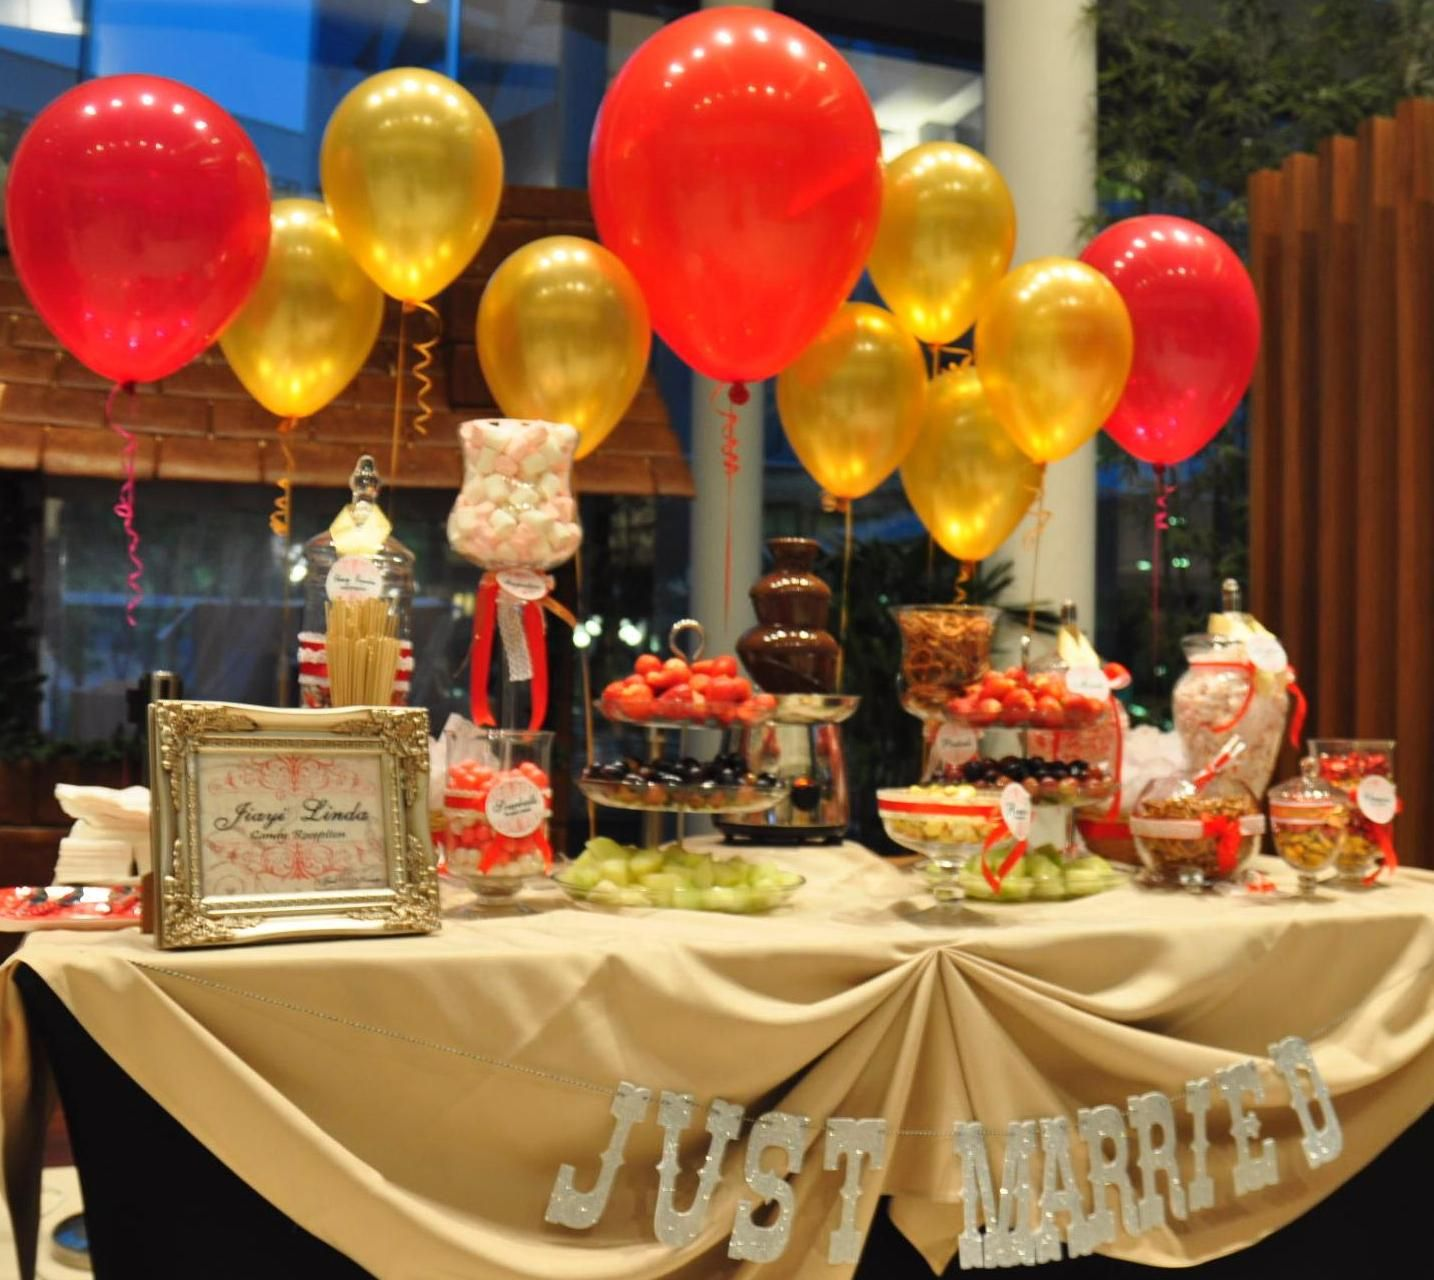 Indian table decorations - 9 Incredibly Awesome Ways To Add Balloons To An Indian Wedding Decor